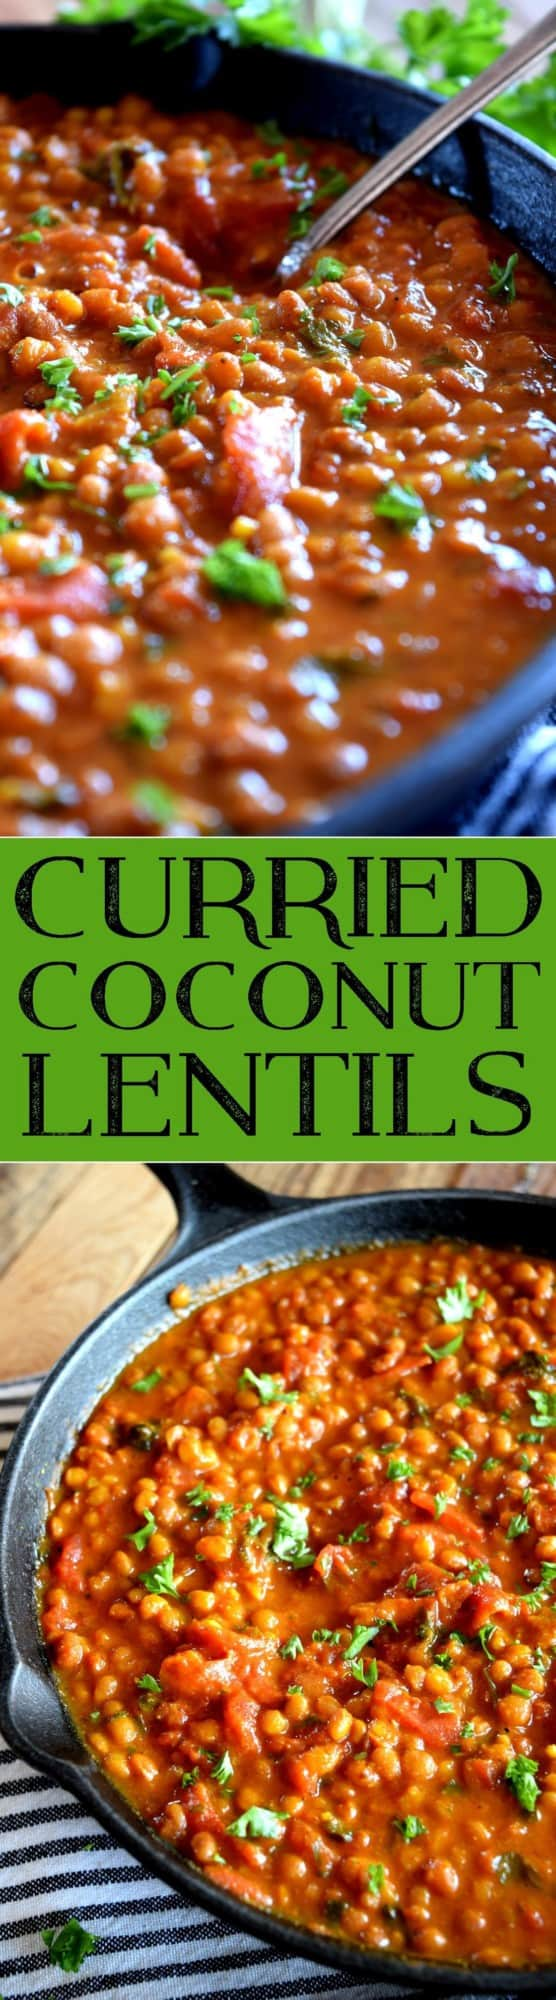 curried-coconut-lentils